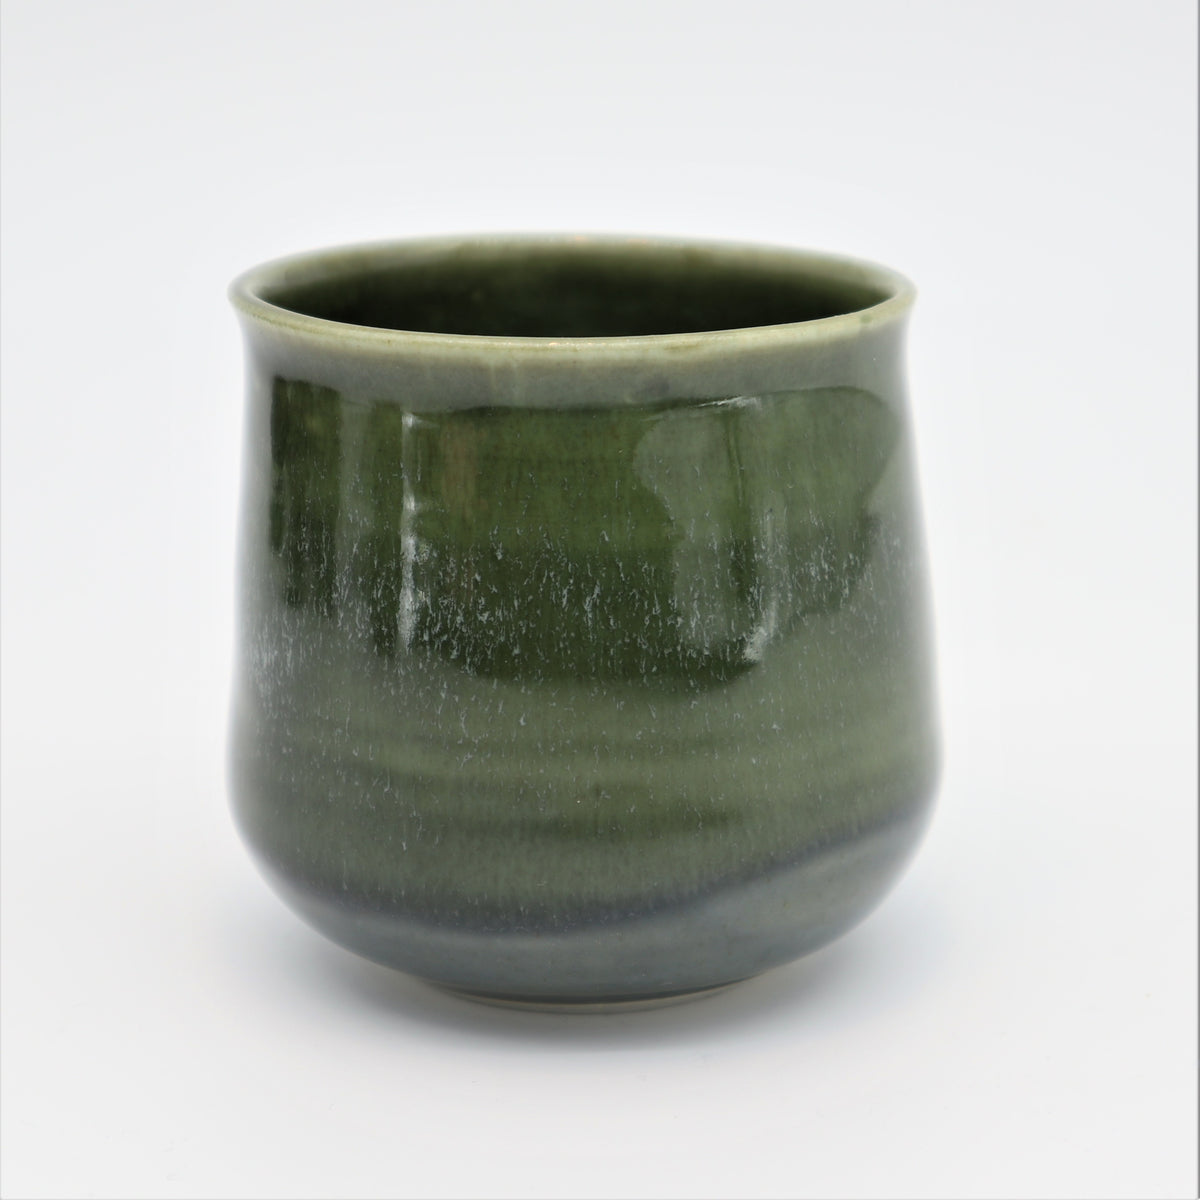 Cup, small green, outward lip